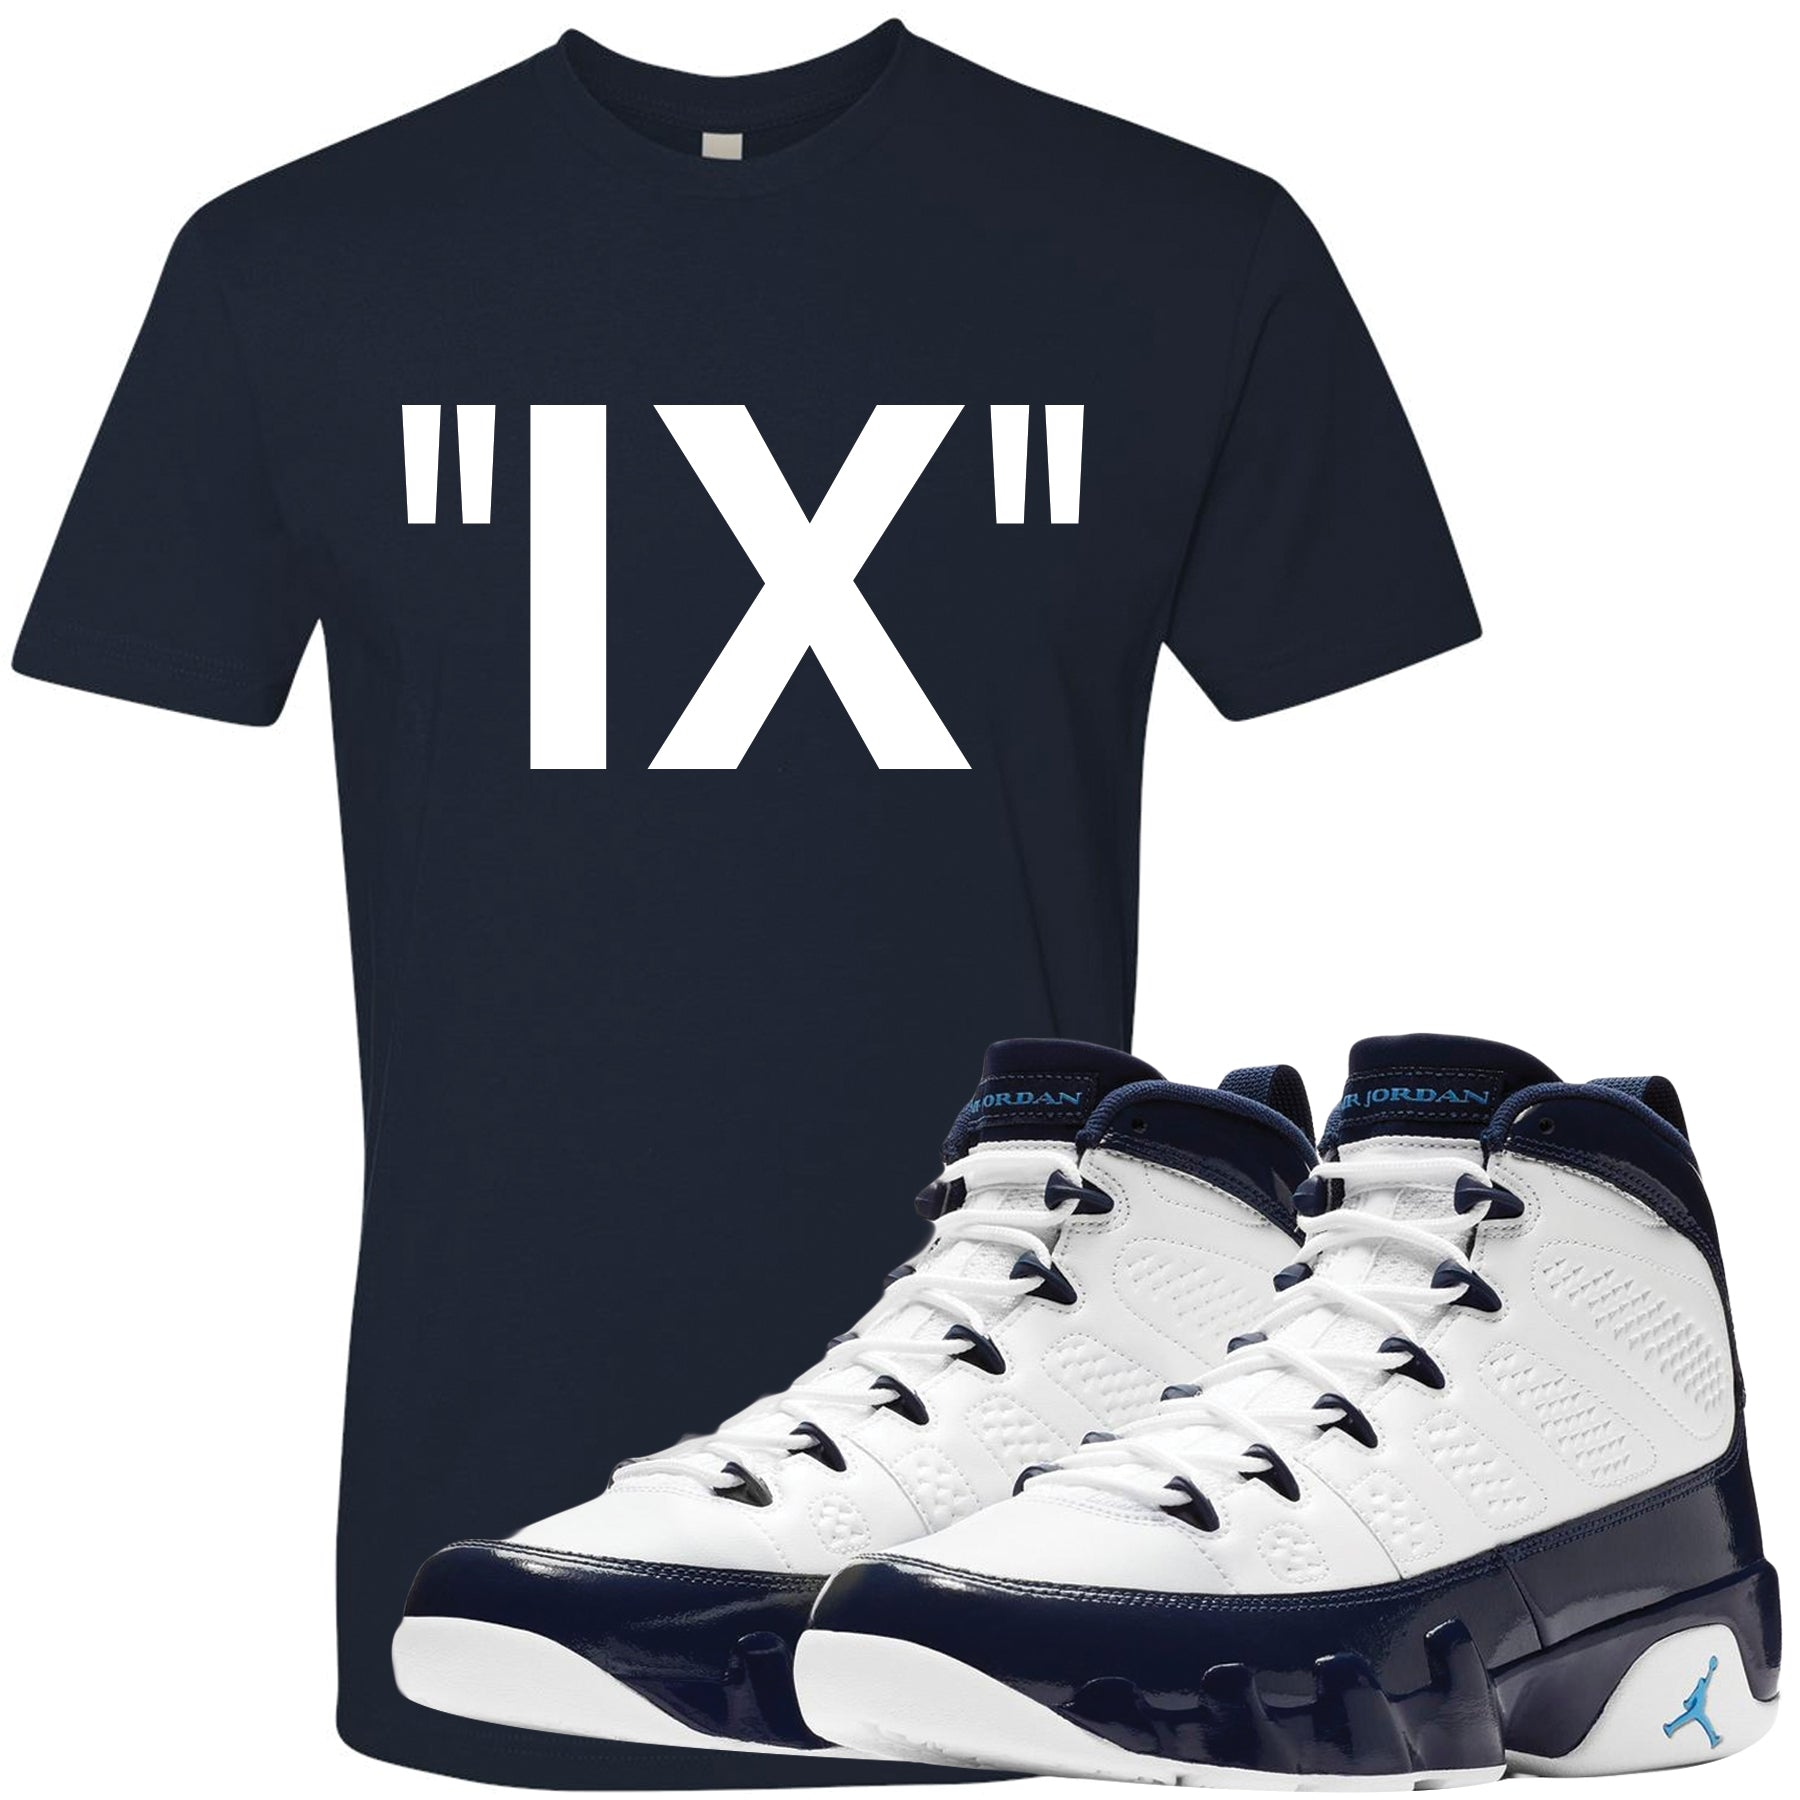 68e04381455a41 Match your pair of Jordan 9 UNC All Star Blue Pearl sneakers with this  sneaker matching